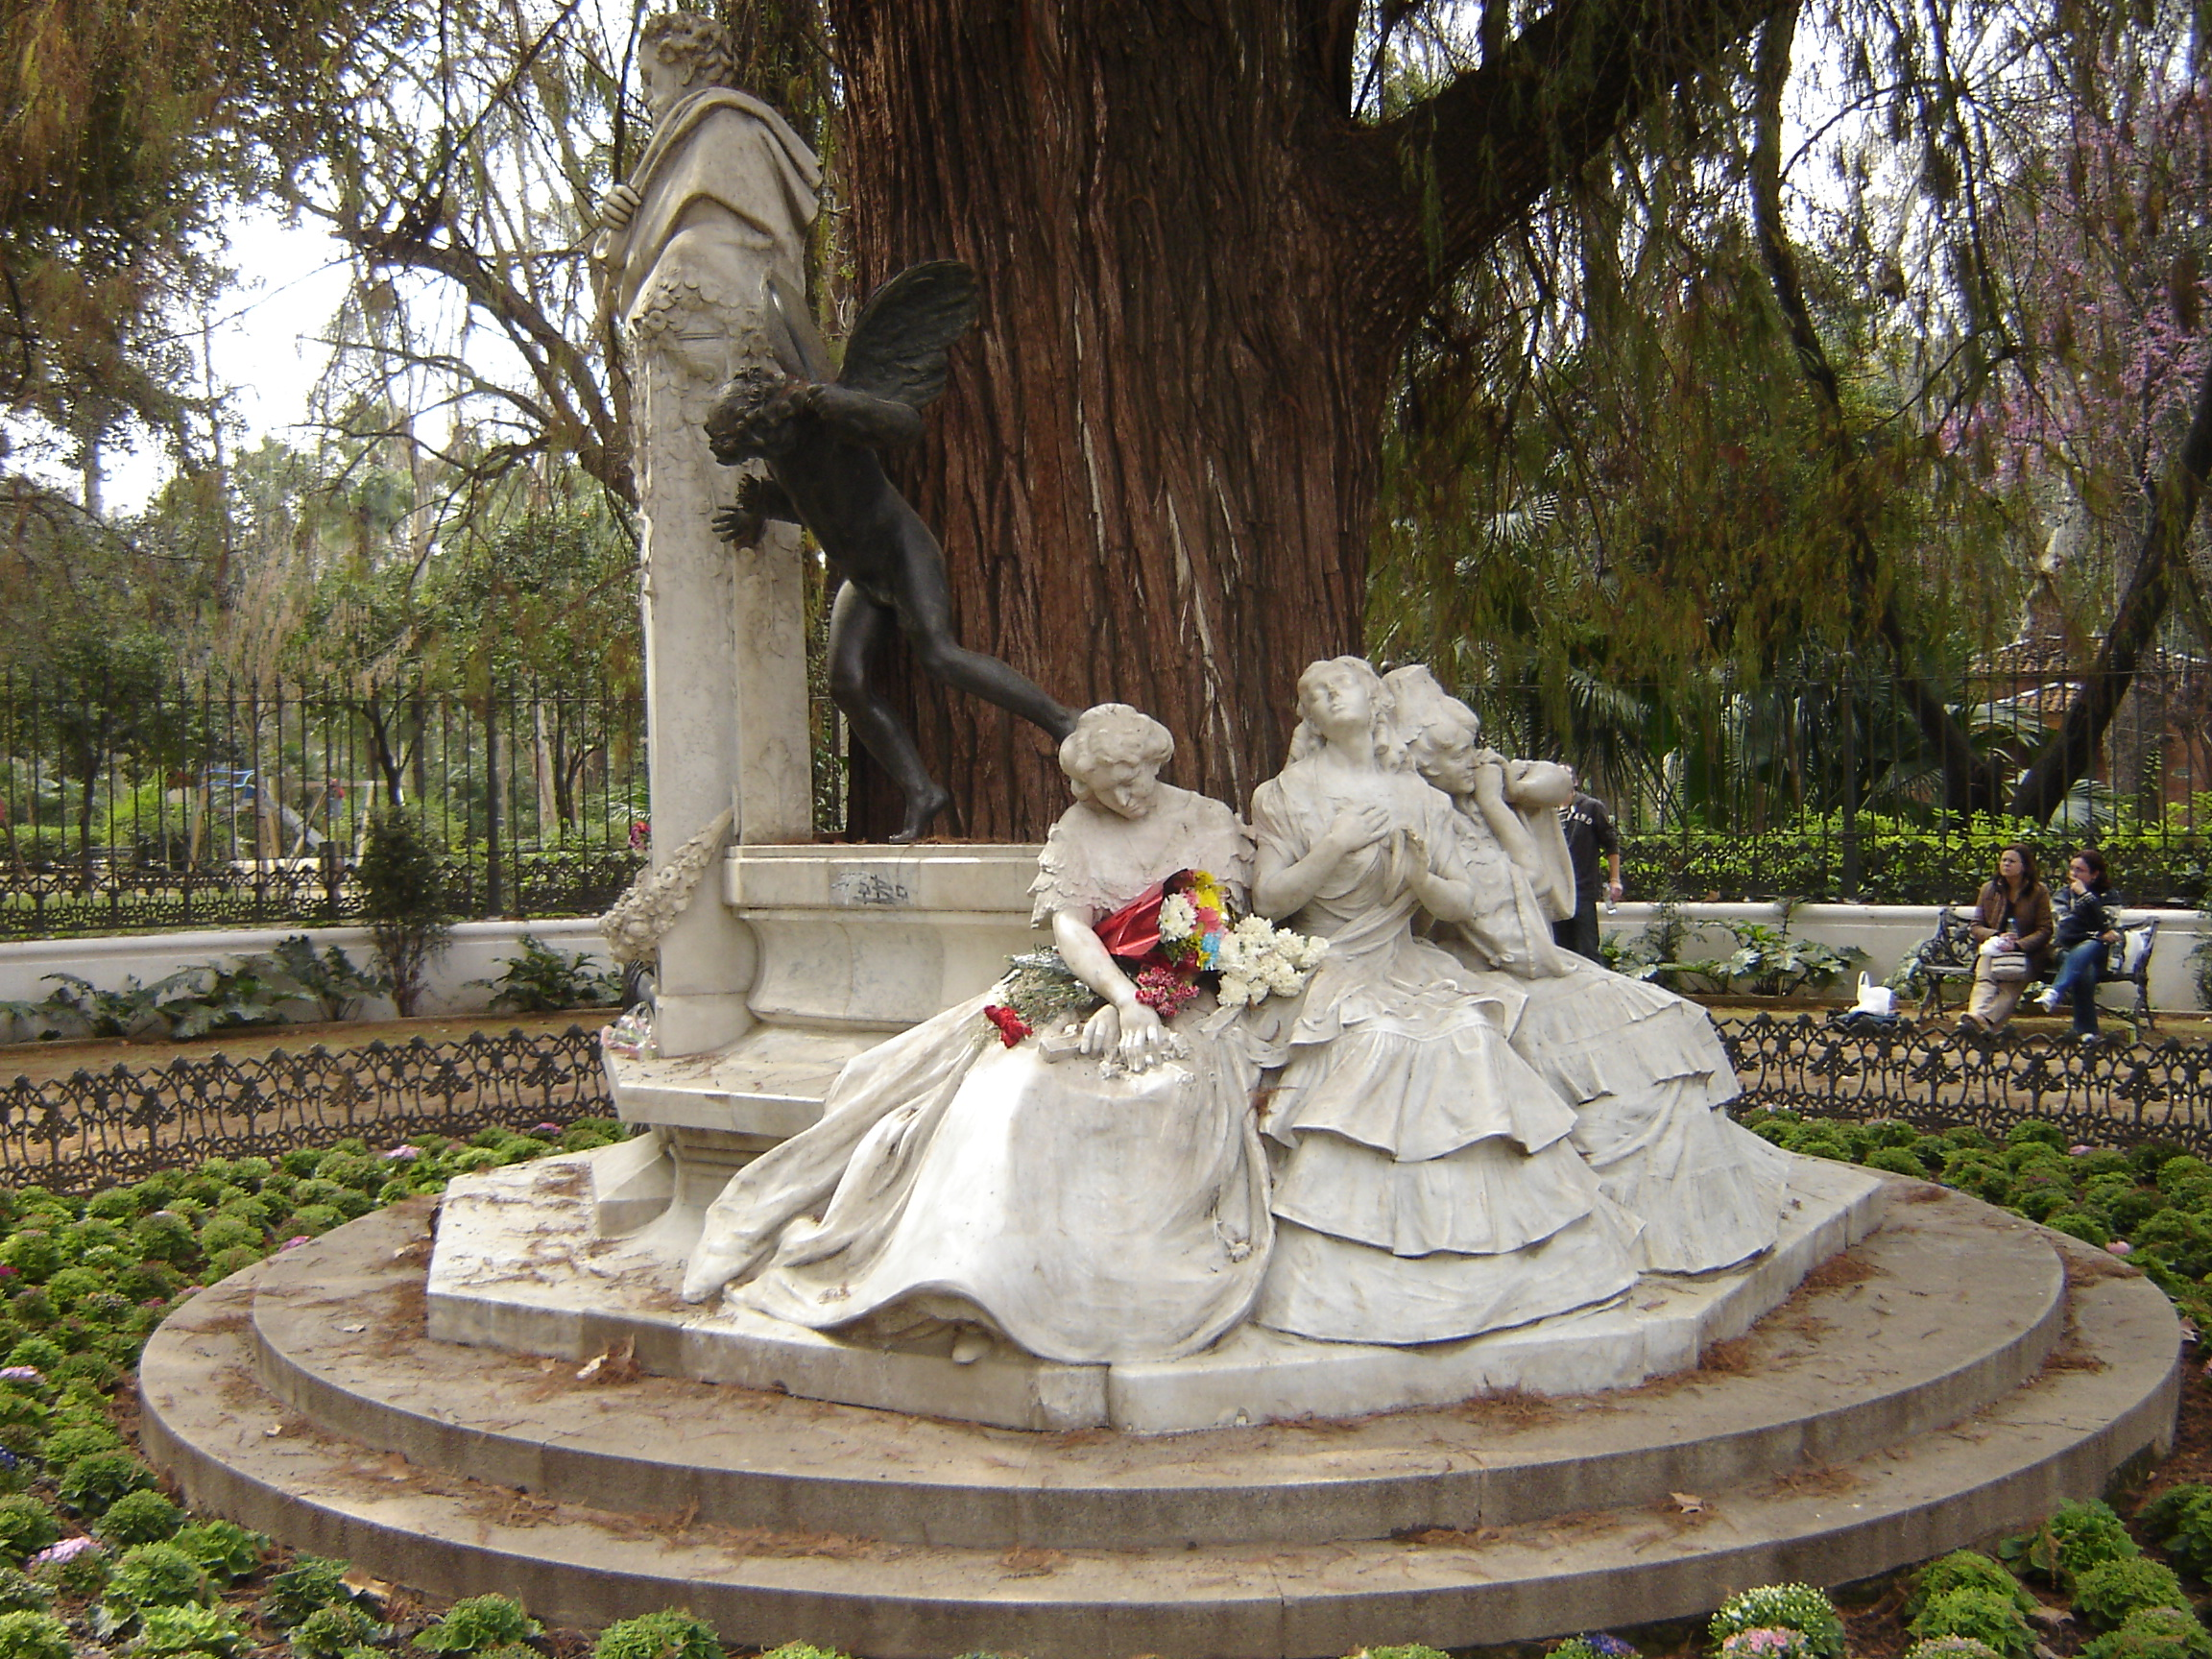 http://upload.wikimedia.org/wikipedia/commons/1/14/SevillaGlorietaDeBecquer04.JPG